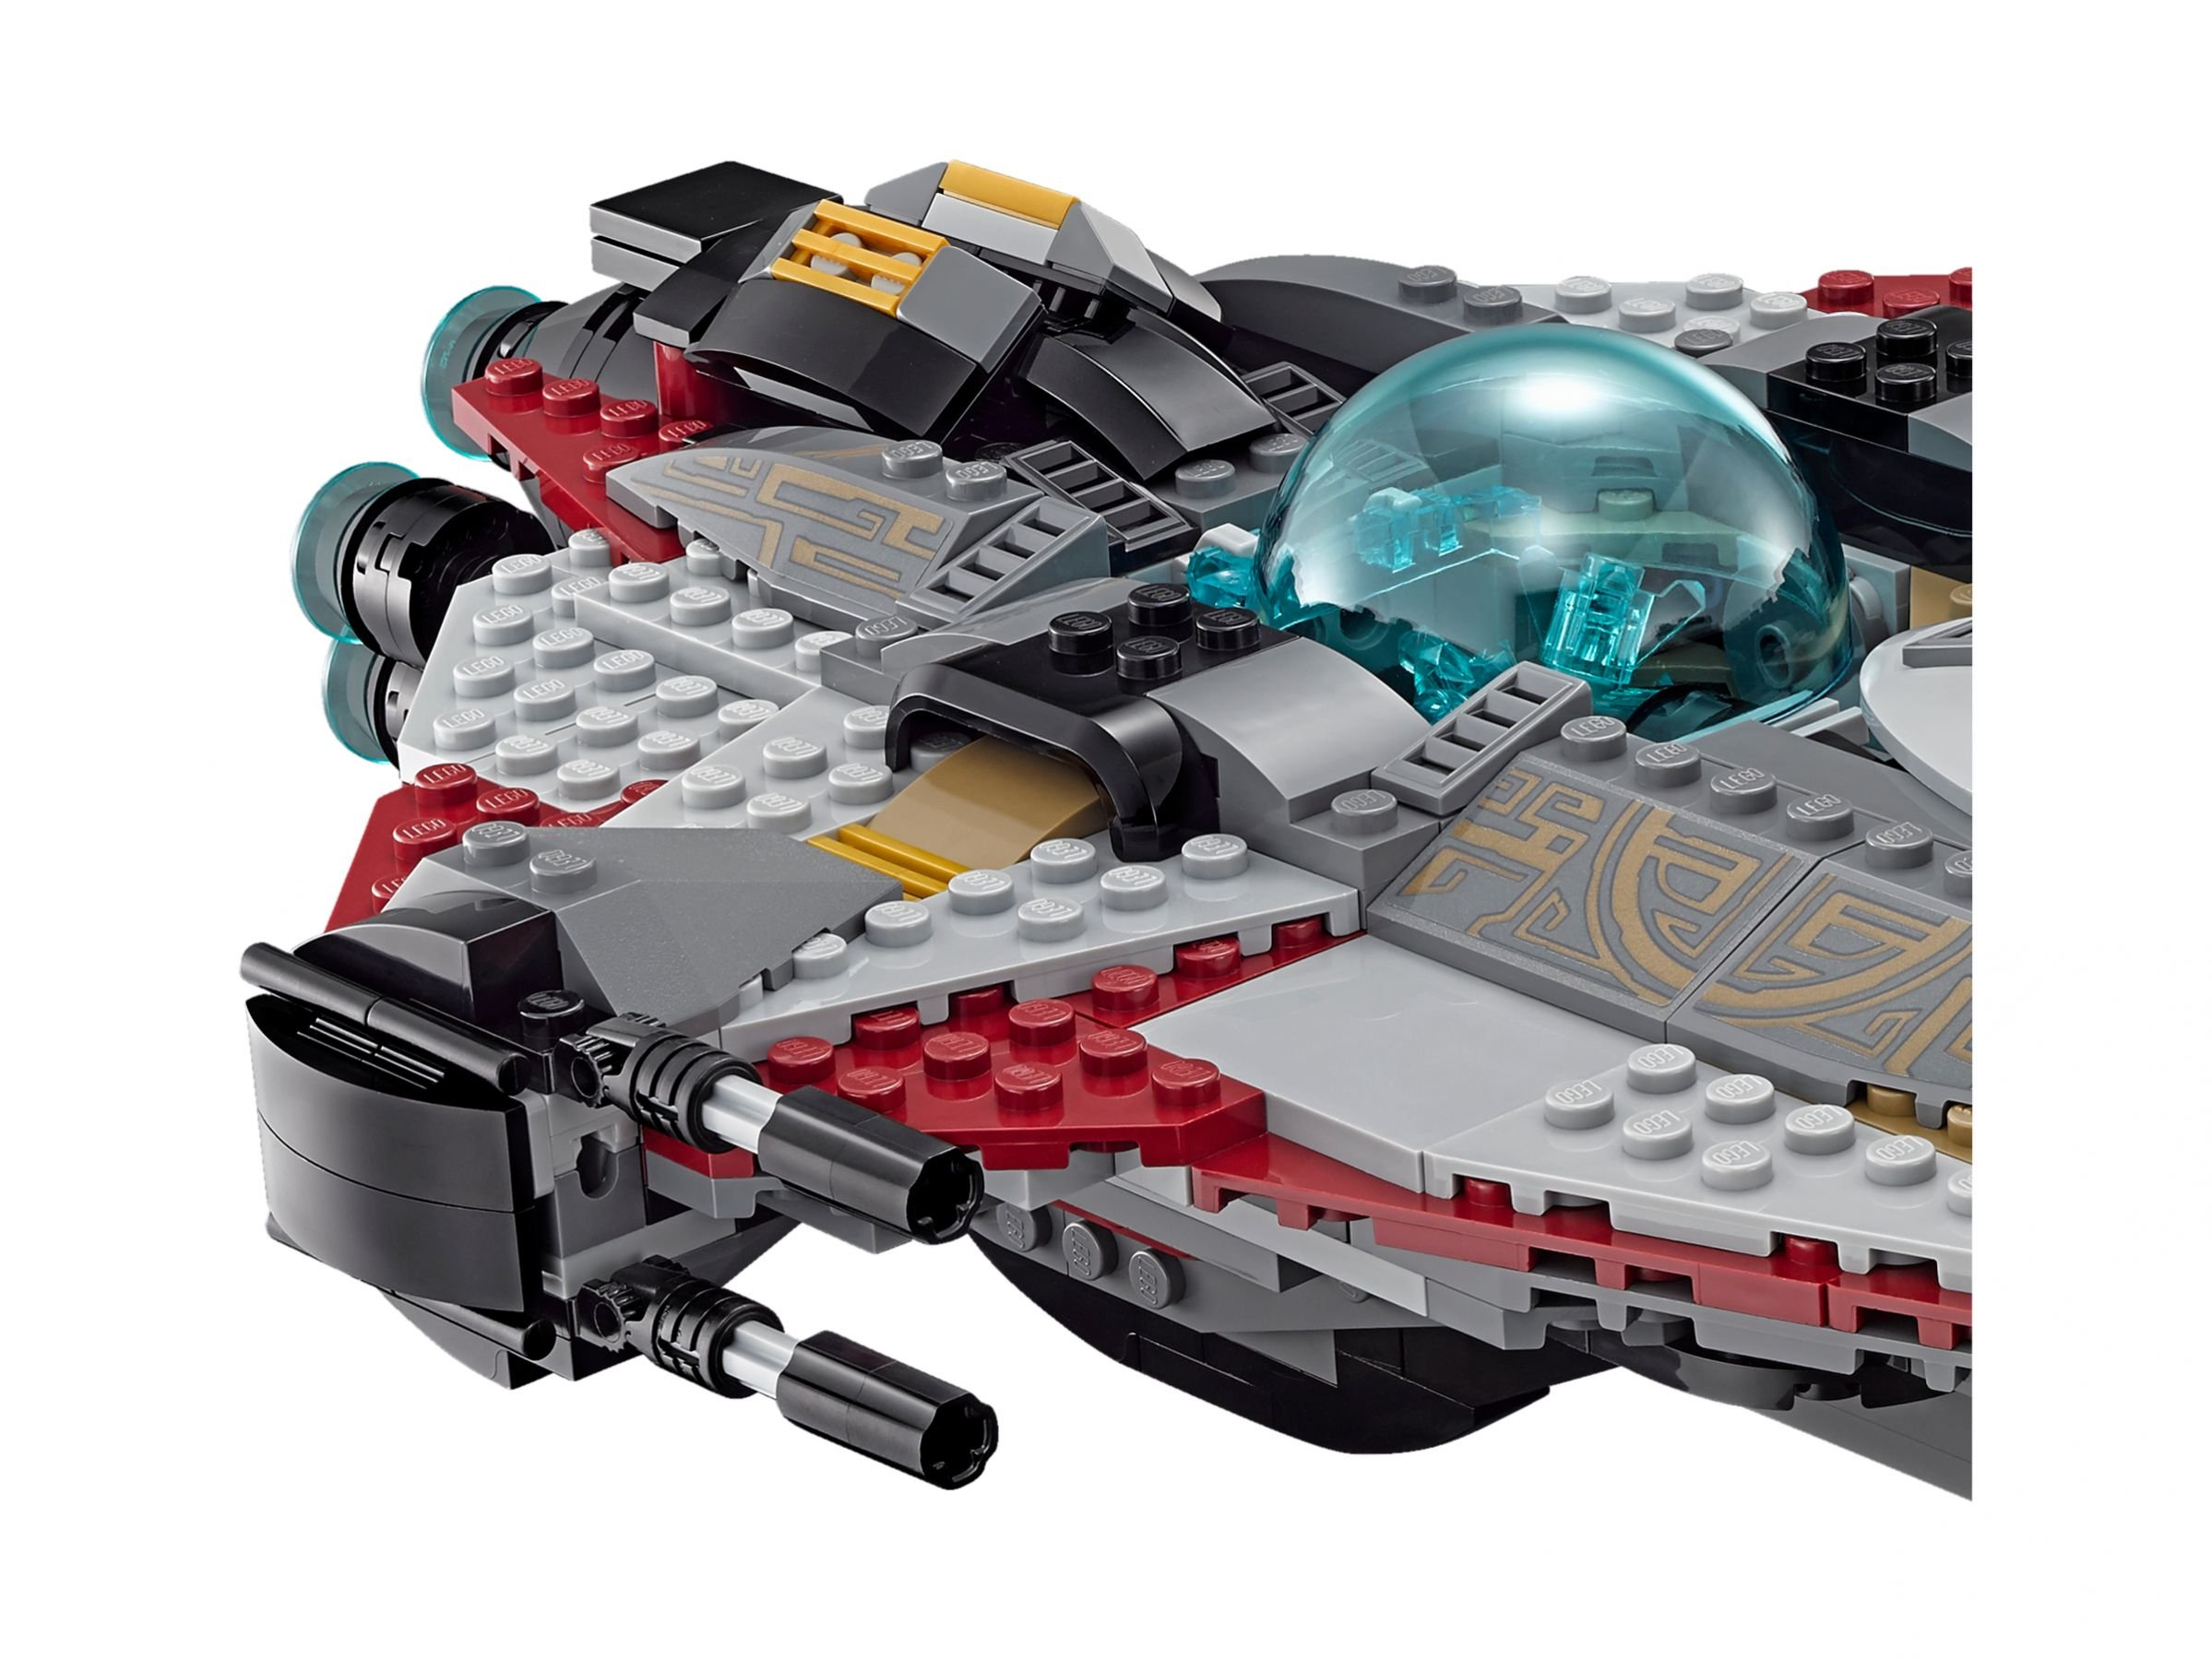 LEGO Star Wars 75186 The Arrowhead LEGO_75186_alt4.jpg